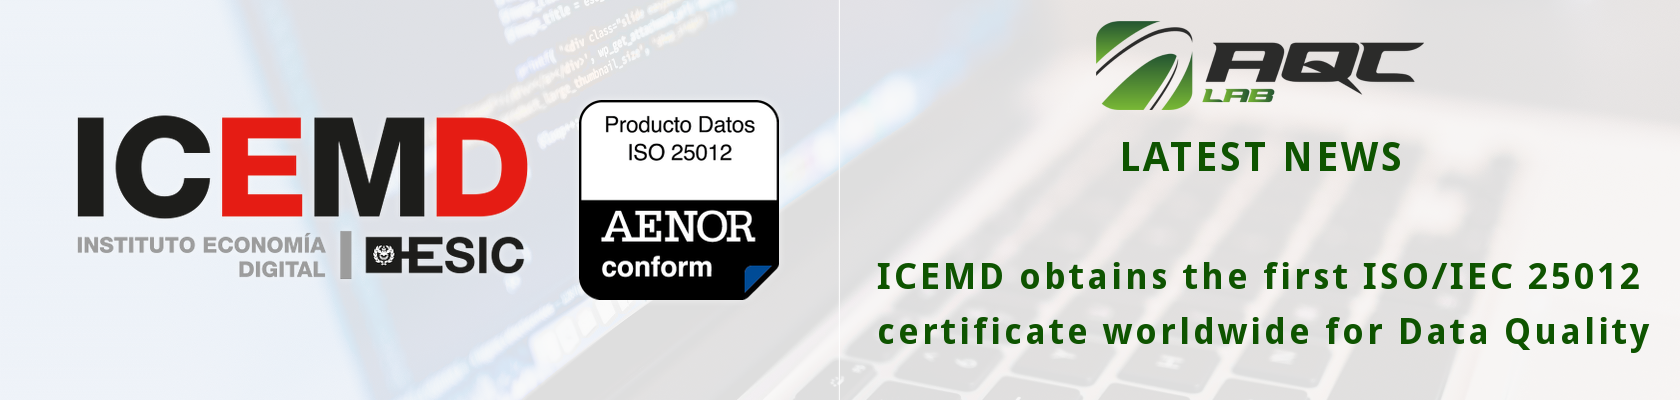 [JULY 2017] ICEMD obtains the first ISO/IEC 25000 certificate worldwide for Data Quality